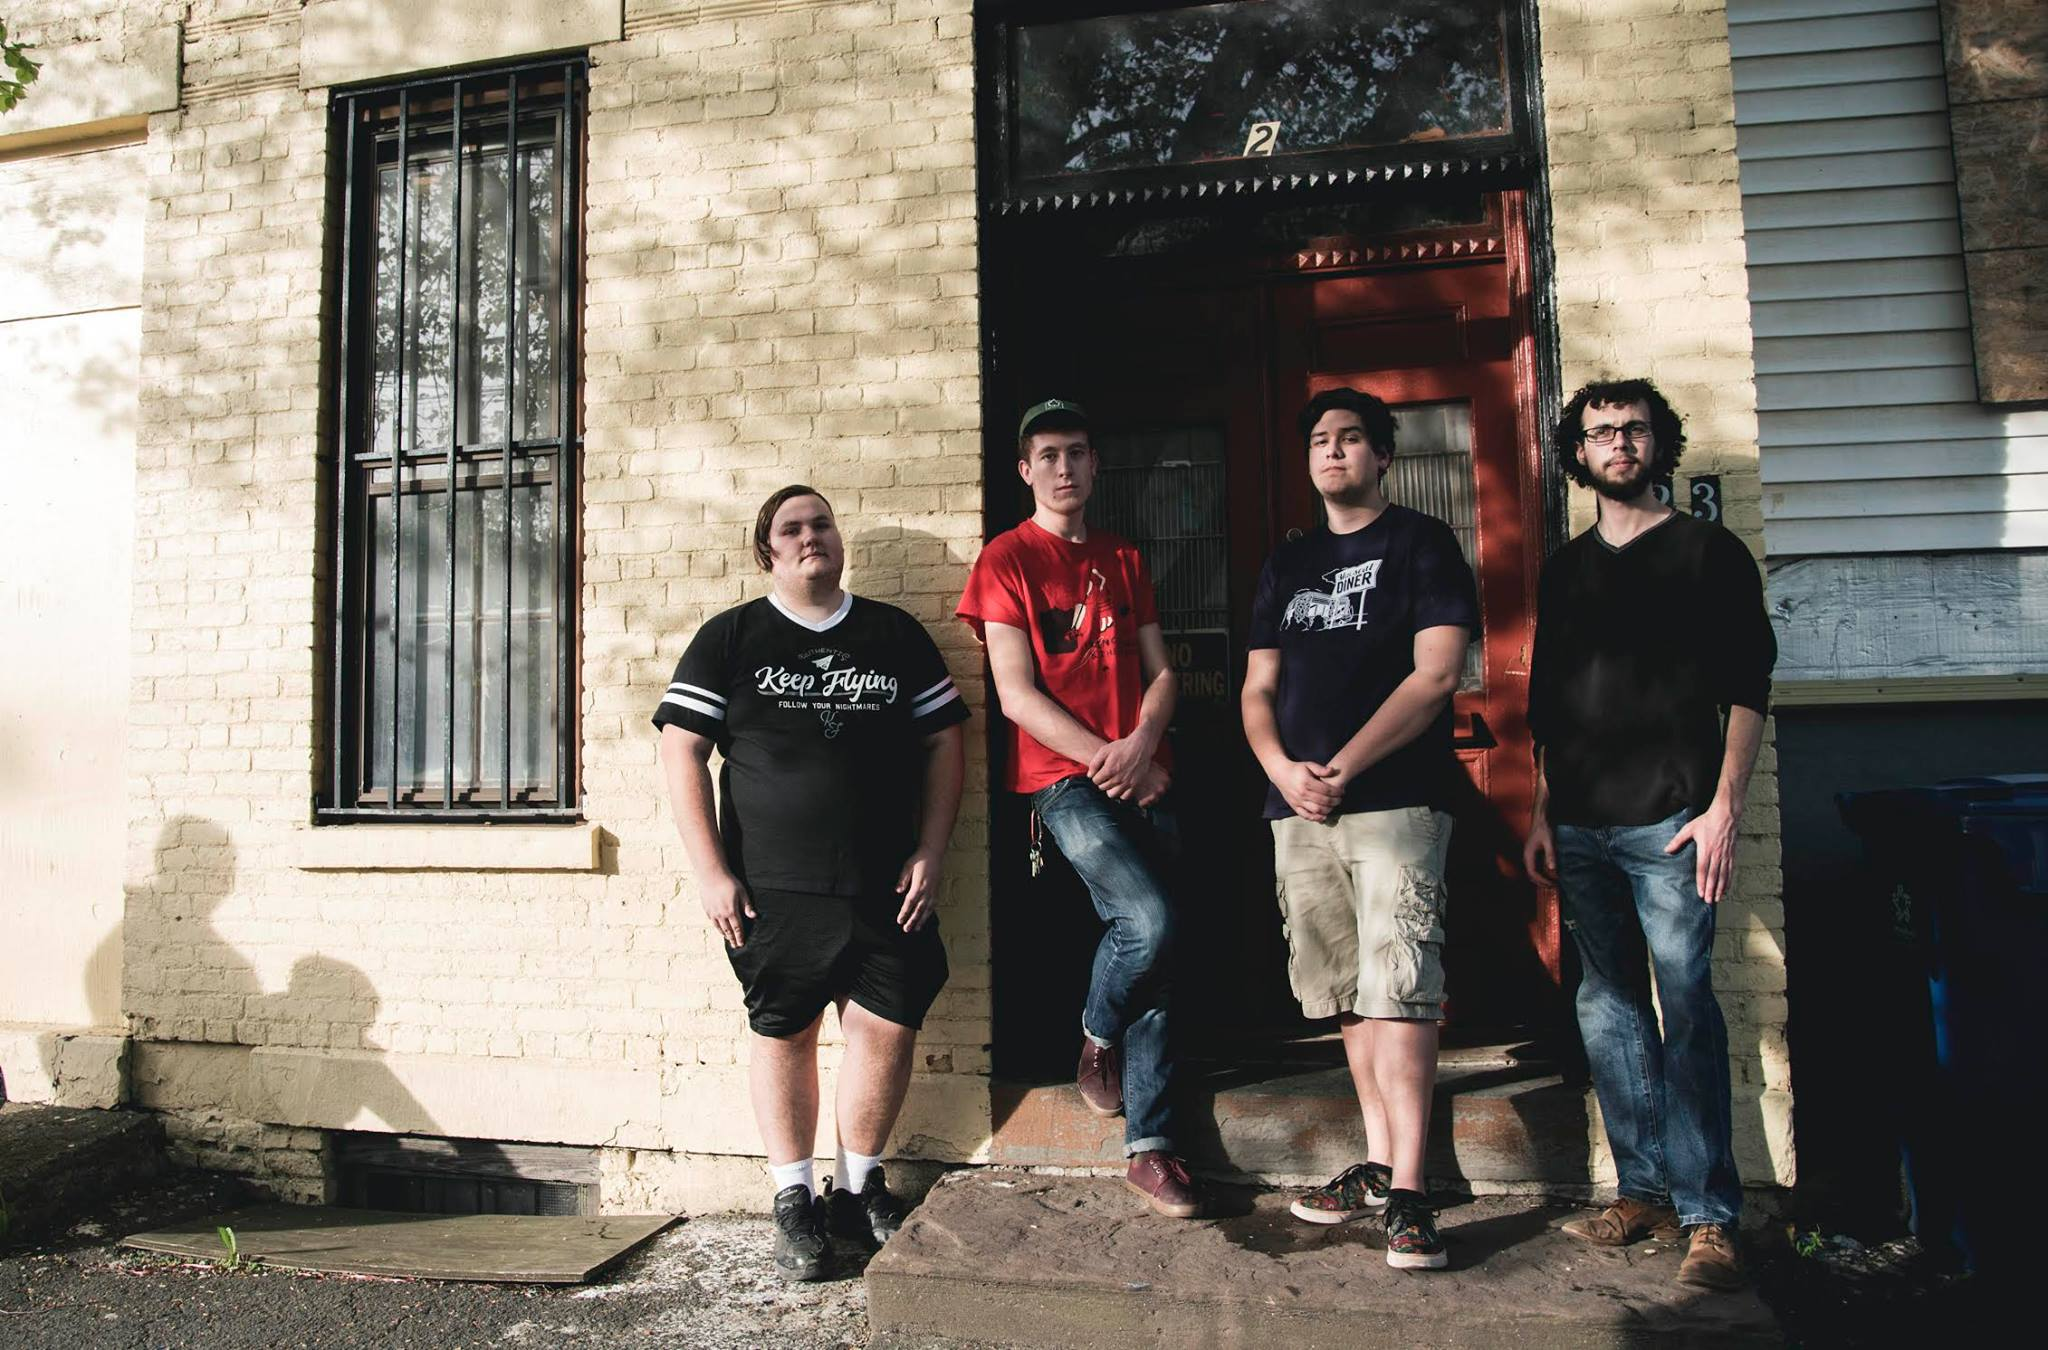 PREMIERE: NY indie-emo band Parallel share debut album 'Contrast'